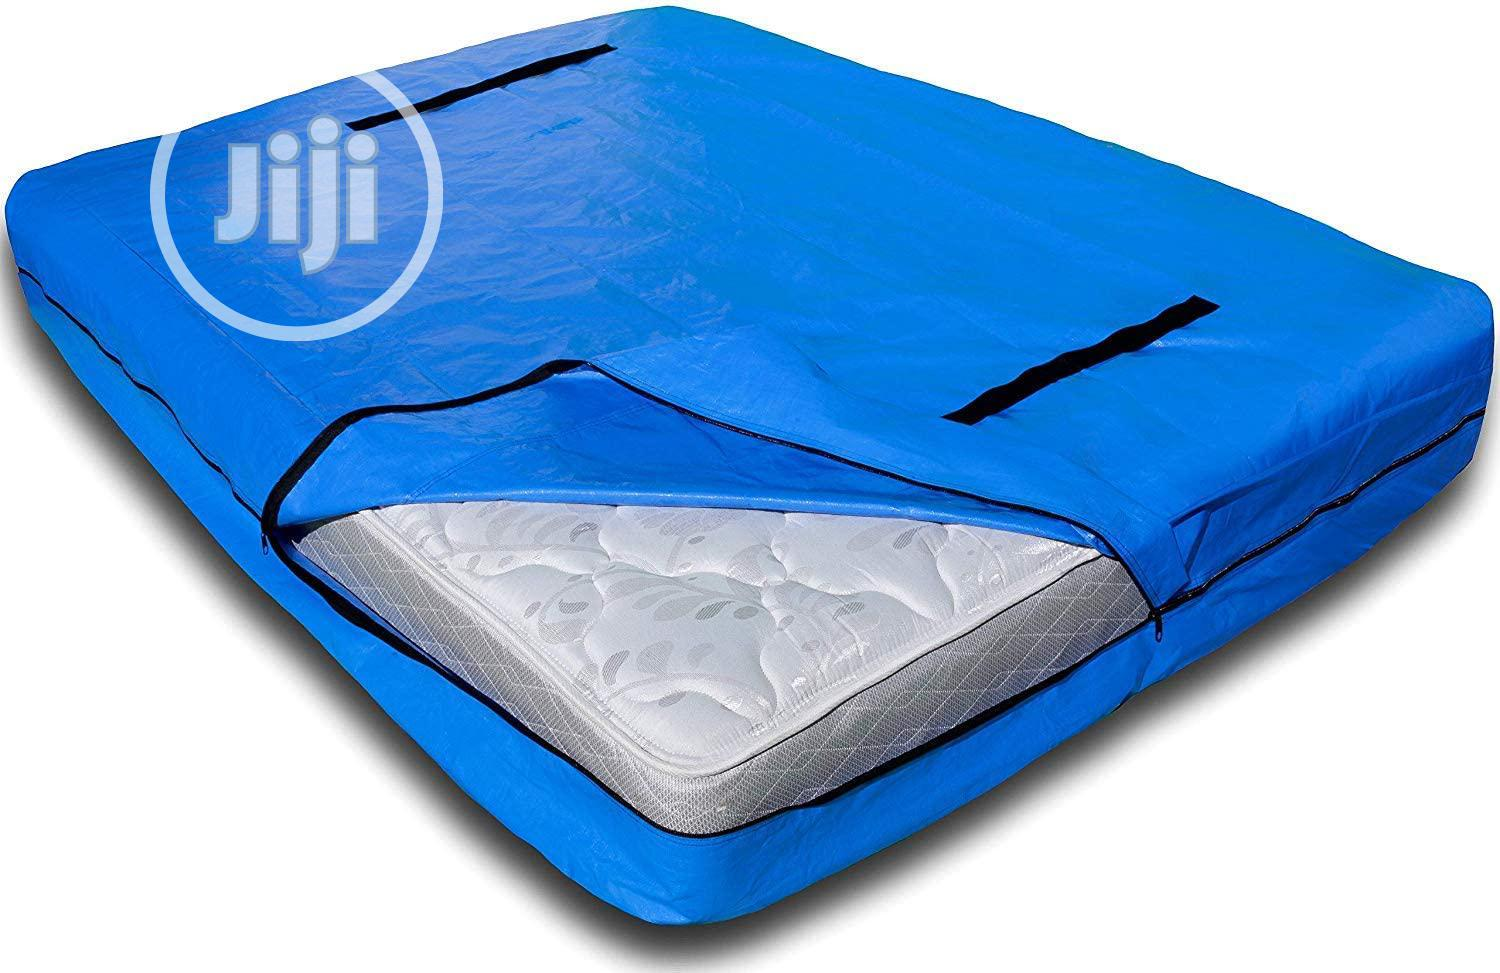 Protect Your Mattress From Liquid, Dust Mites And Bed Bugs